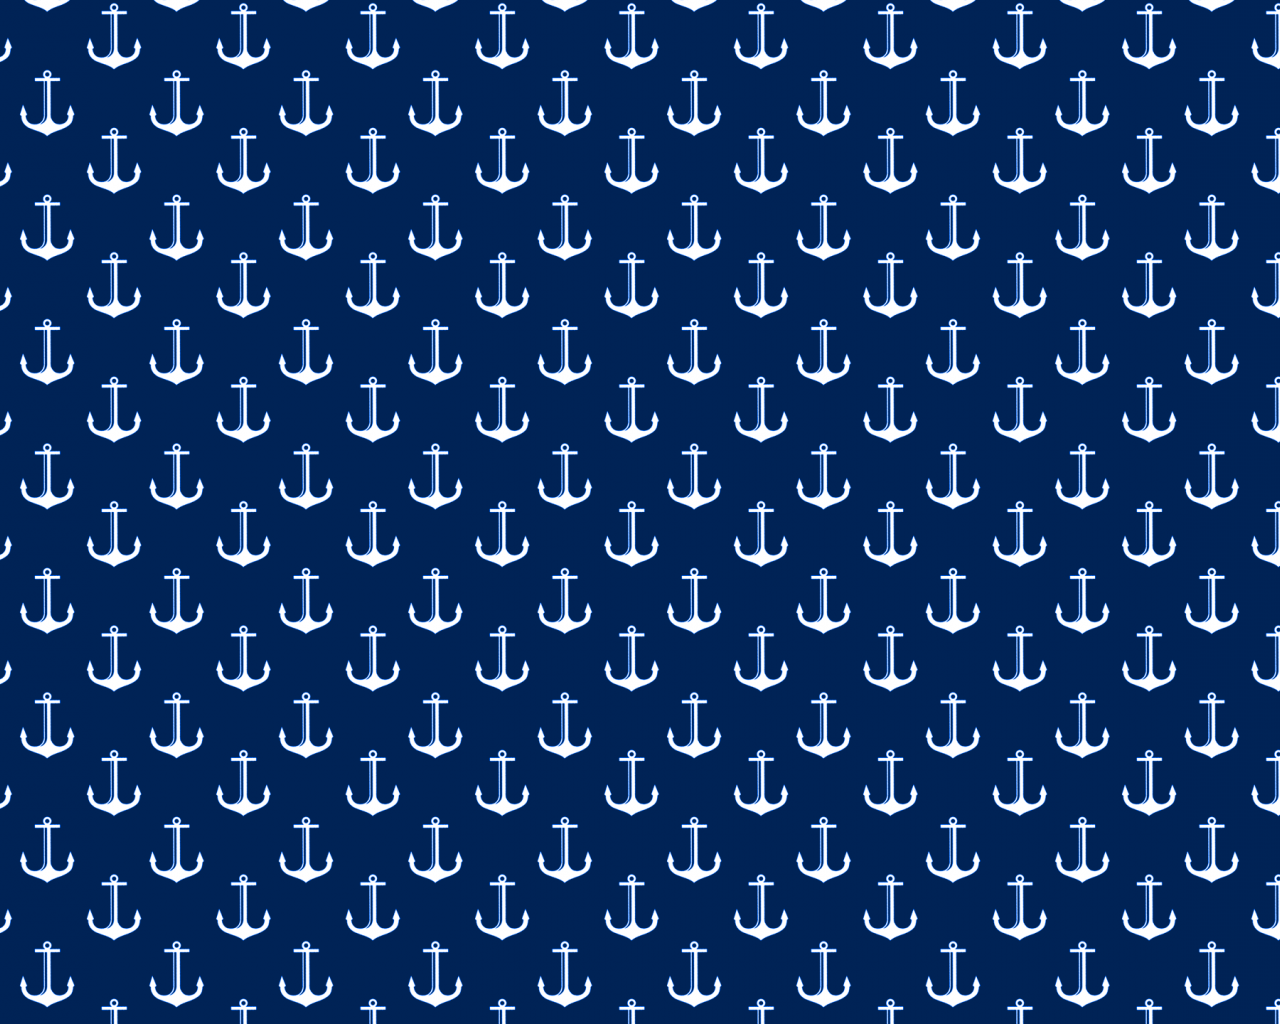 Unduh 68 Wallpaper Tumblr Navy Terbaik